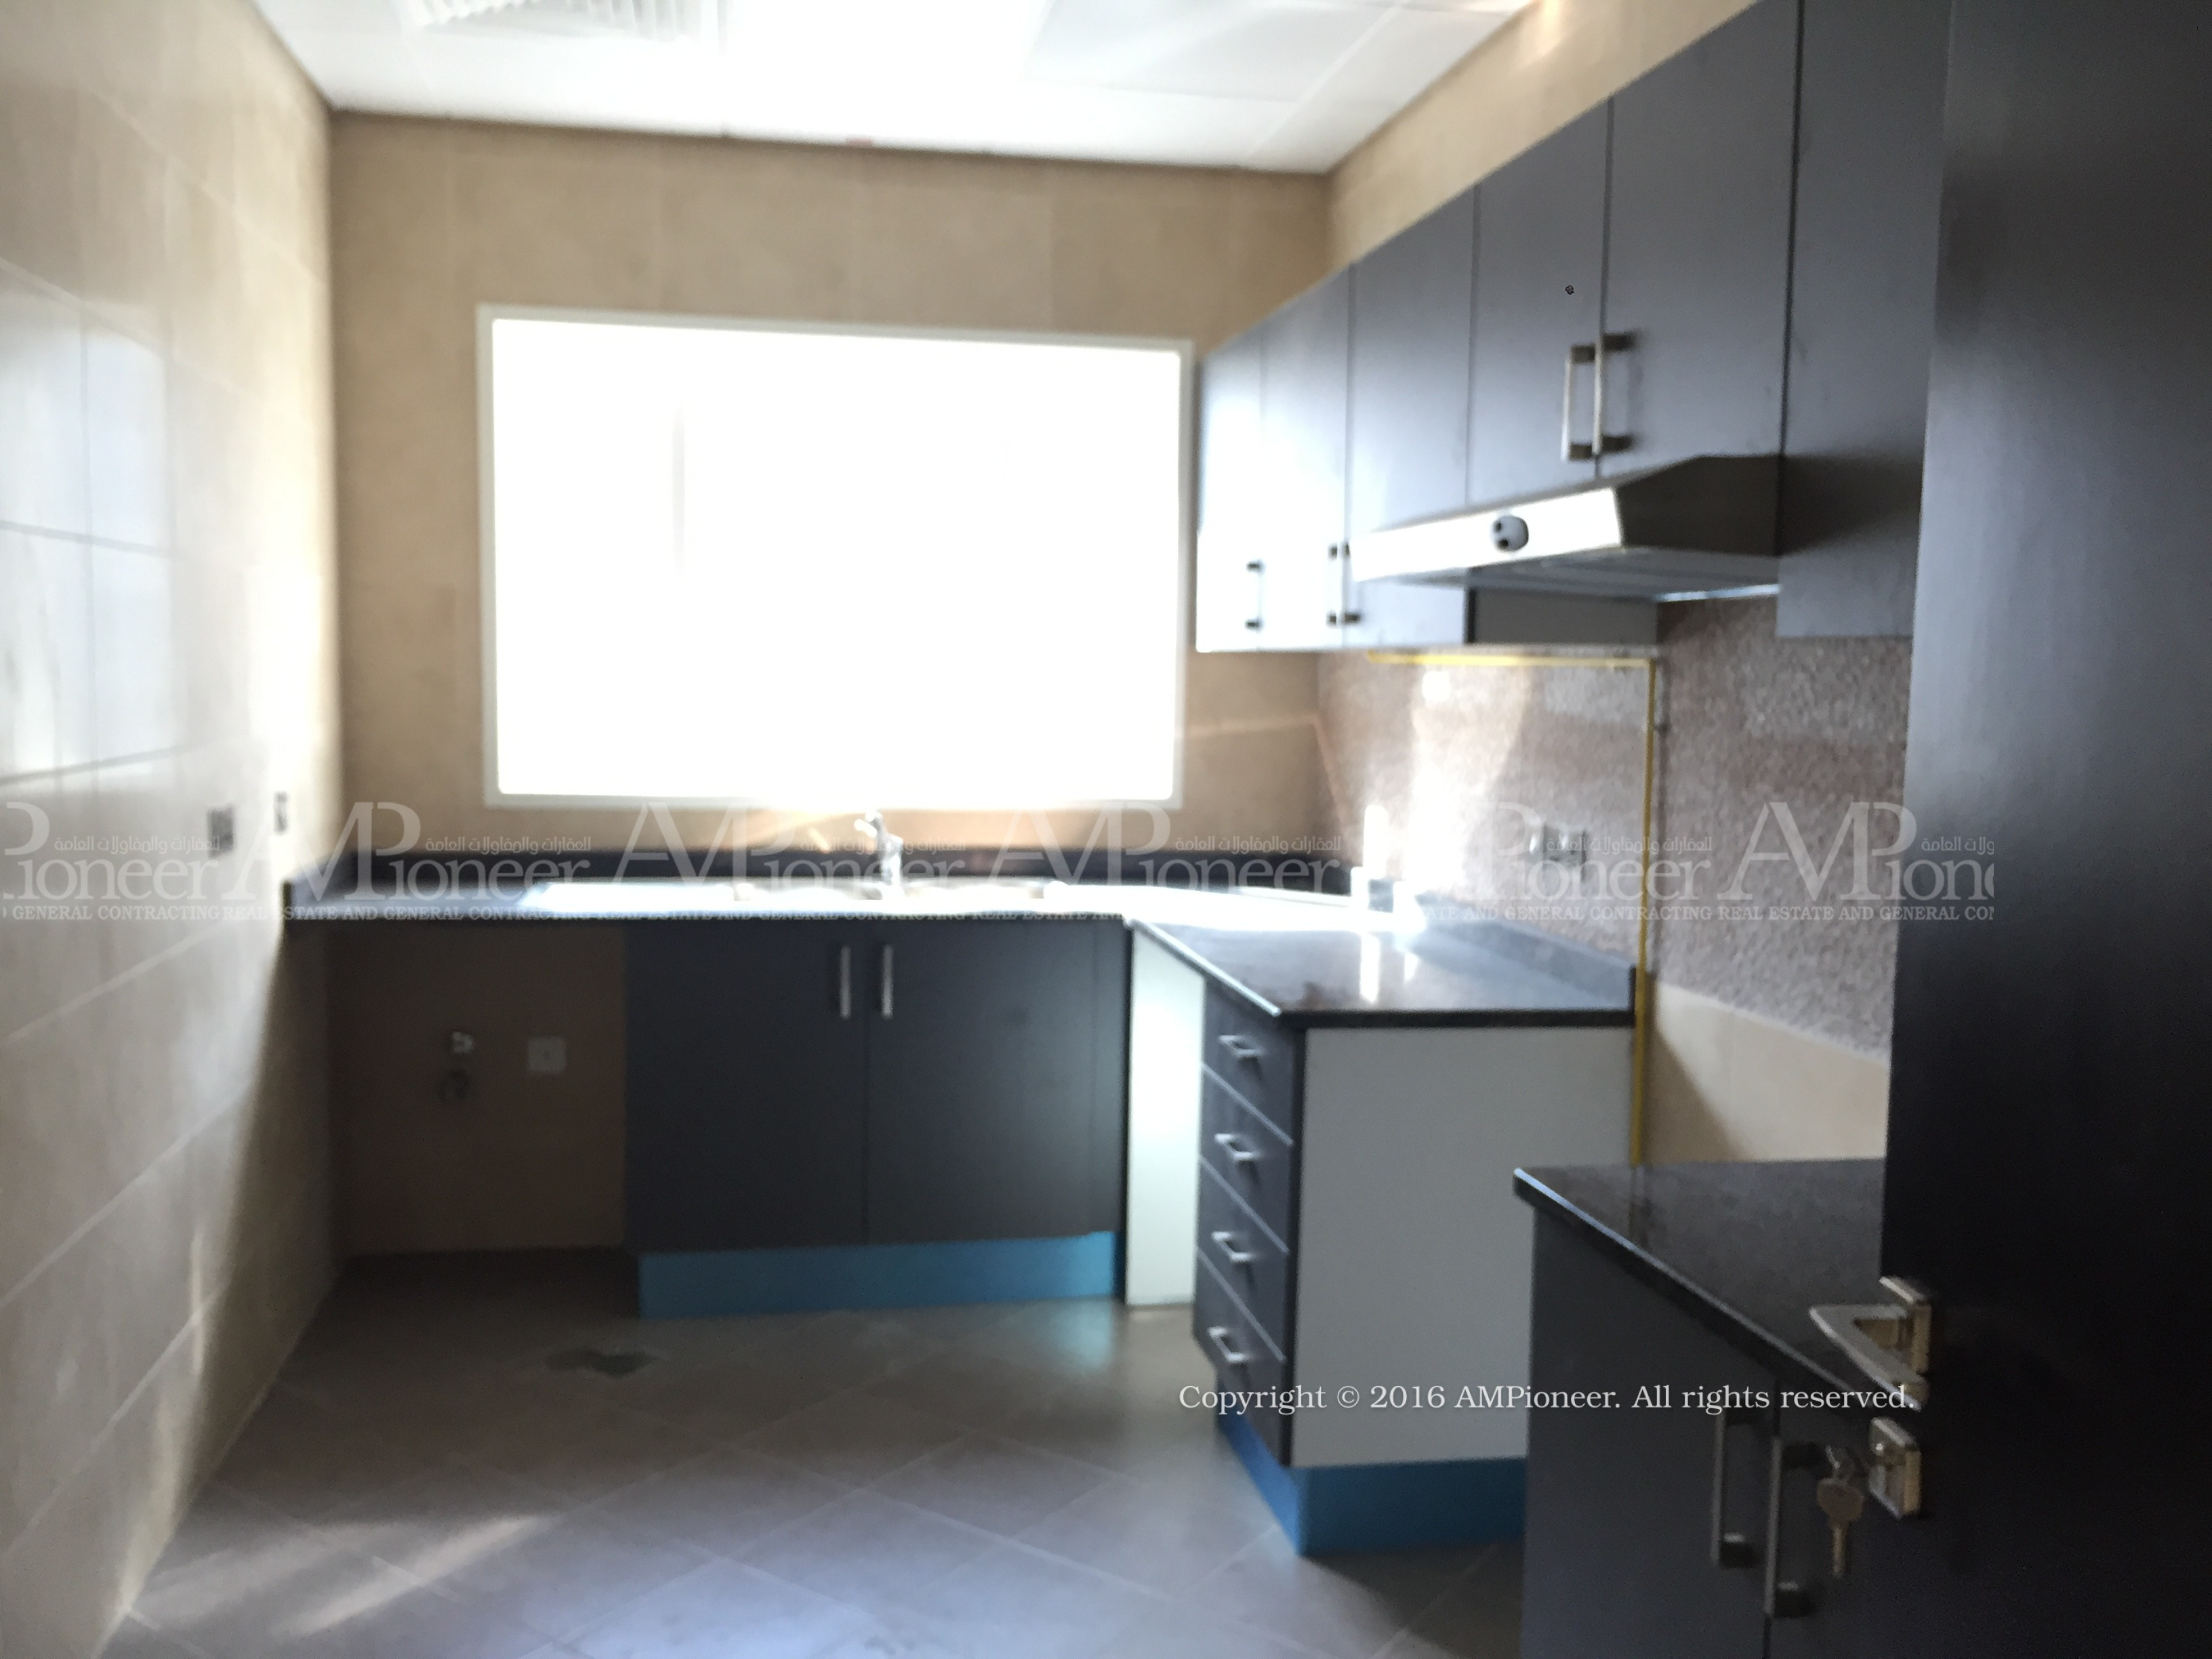 Best Offer ! 3 BR Apt BRAND NEW+FACILITY